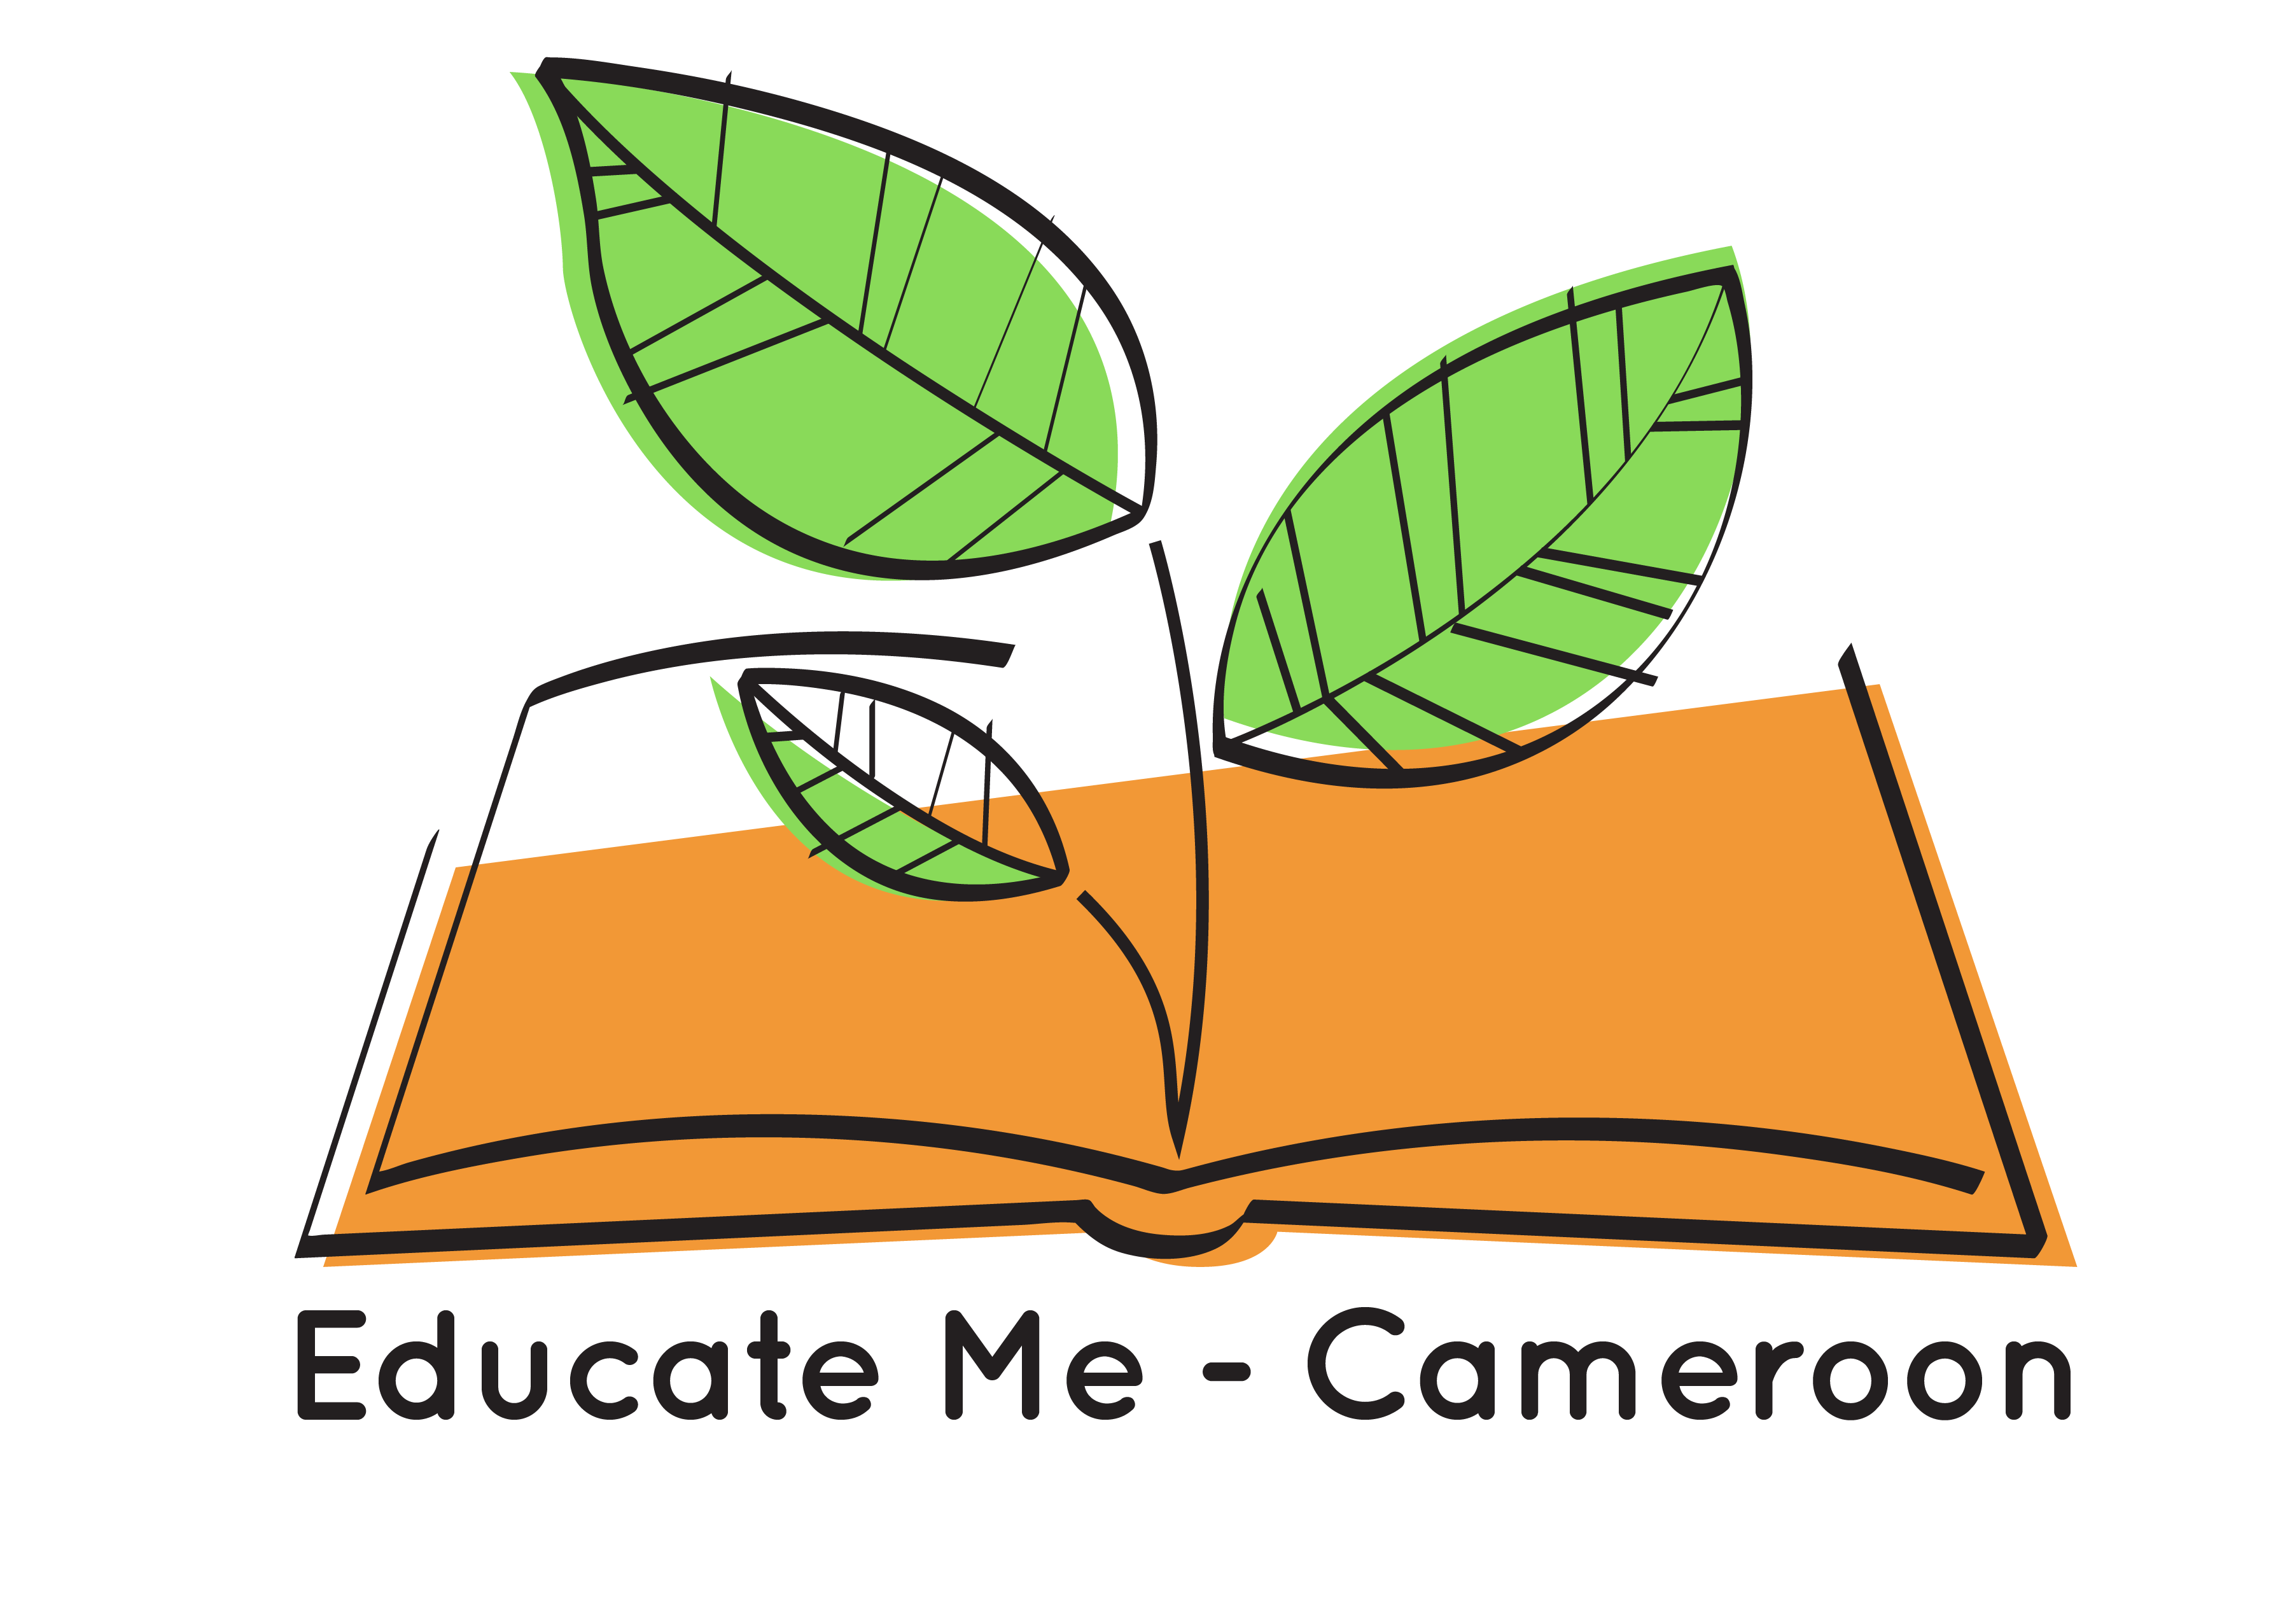 Educate Me - Cameroon